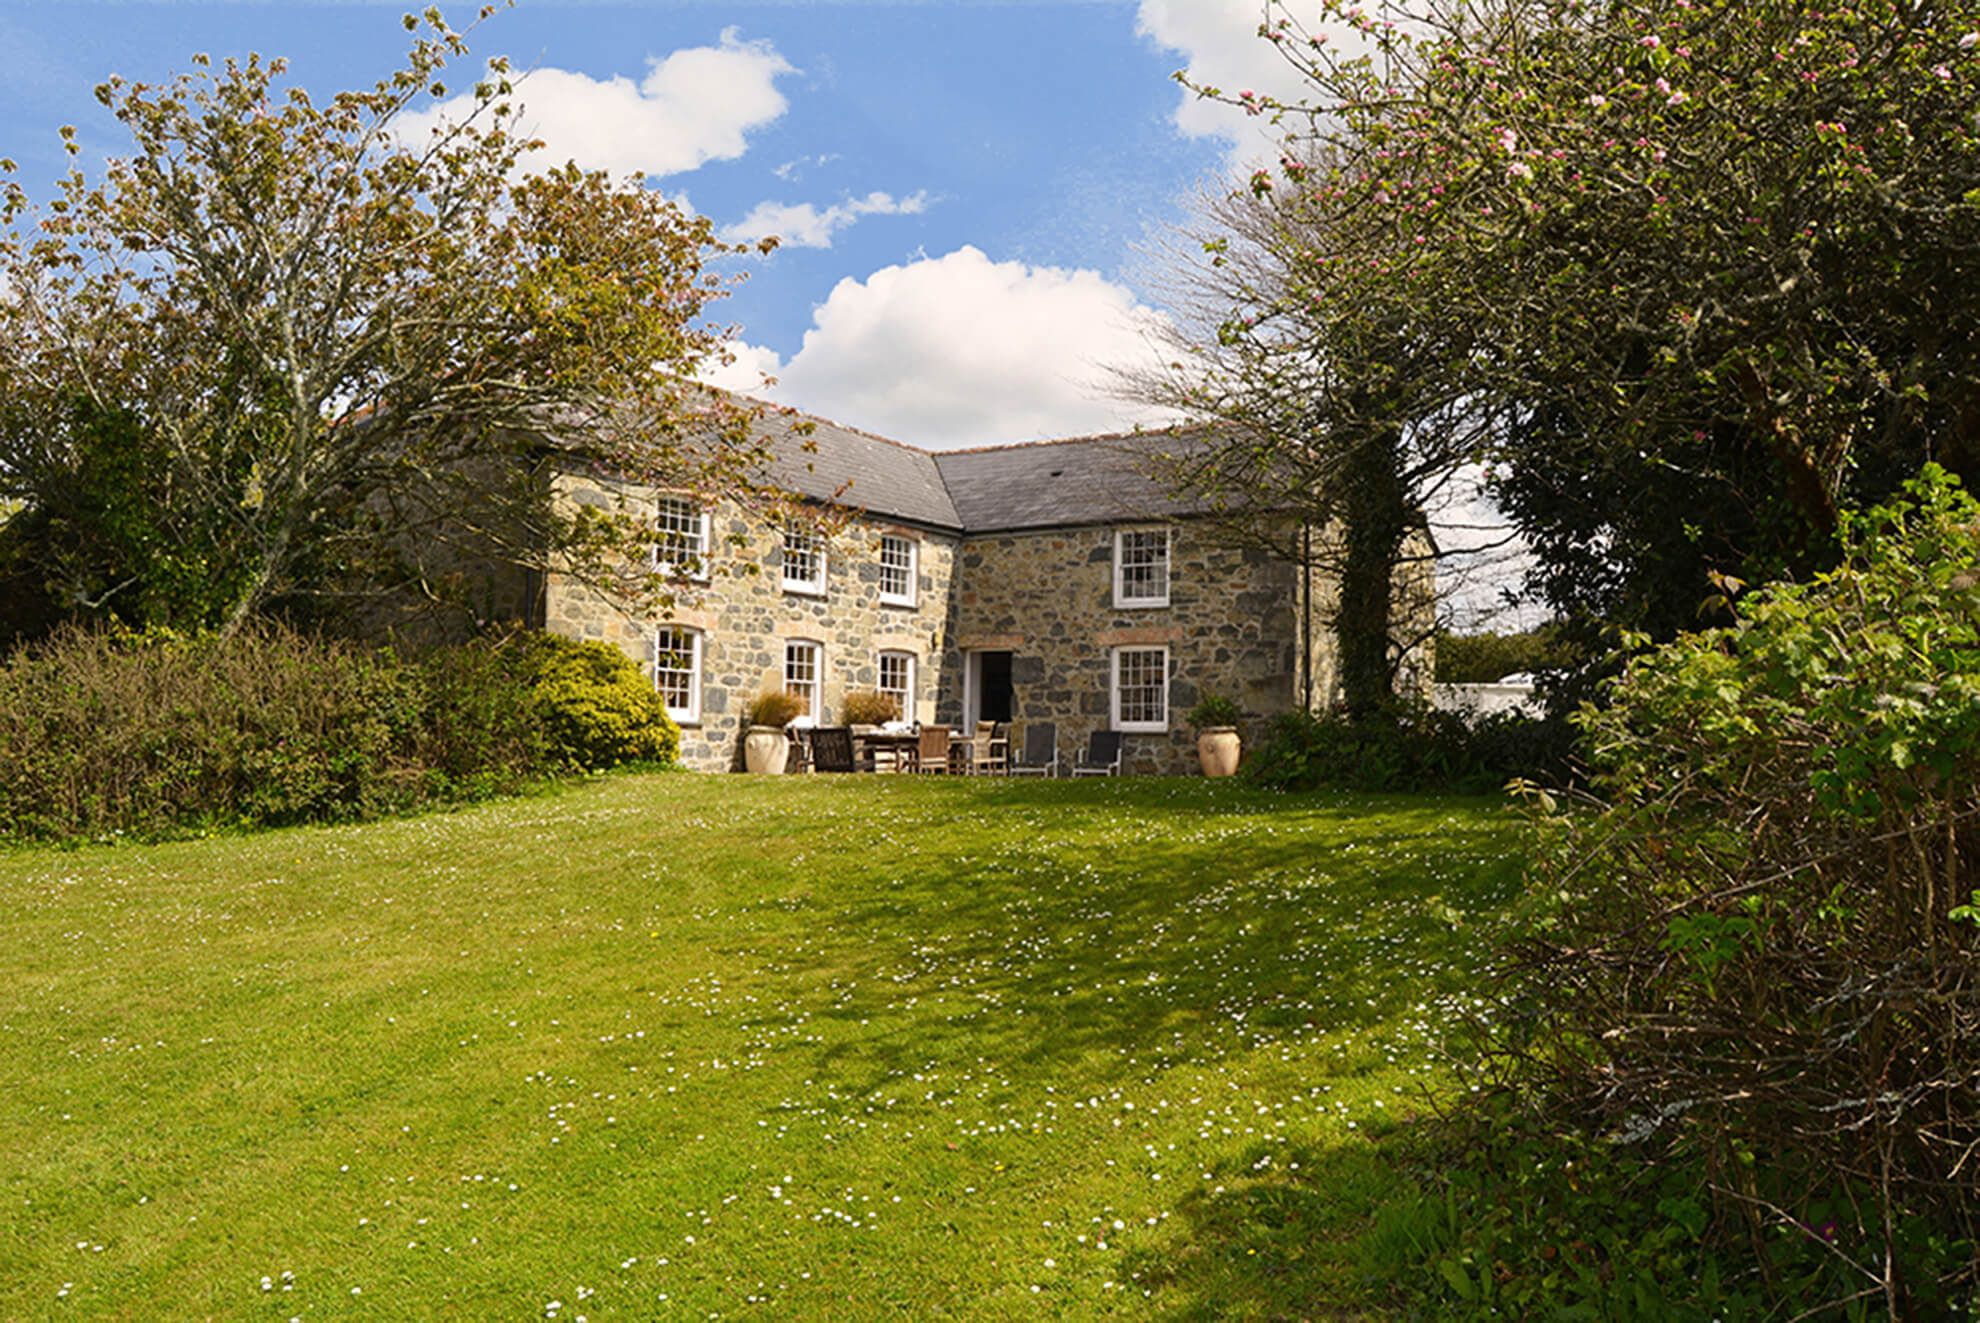 Bonython Manor Farmhouse, sleeping 10,  is a wonderful place for a get-together - and to get-away